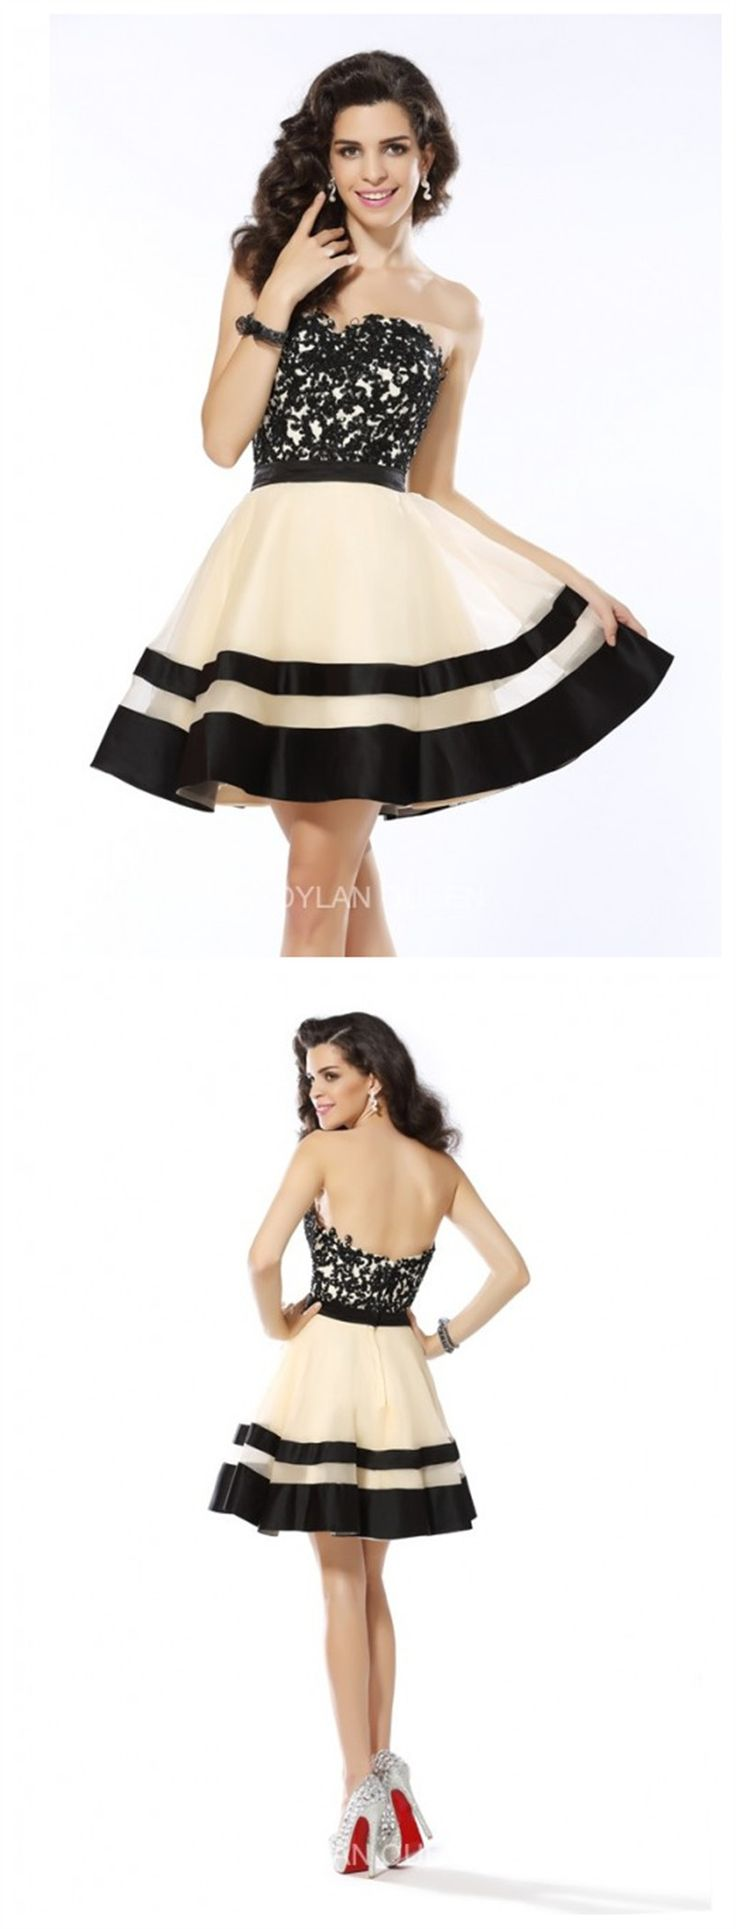 A-line & strapless dress for ball gown #dylanqueen